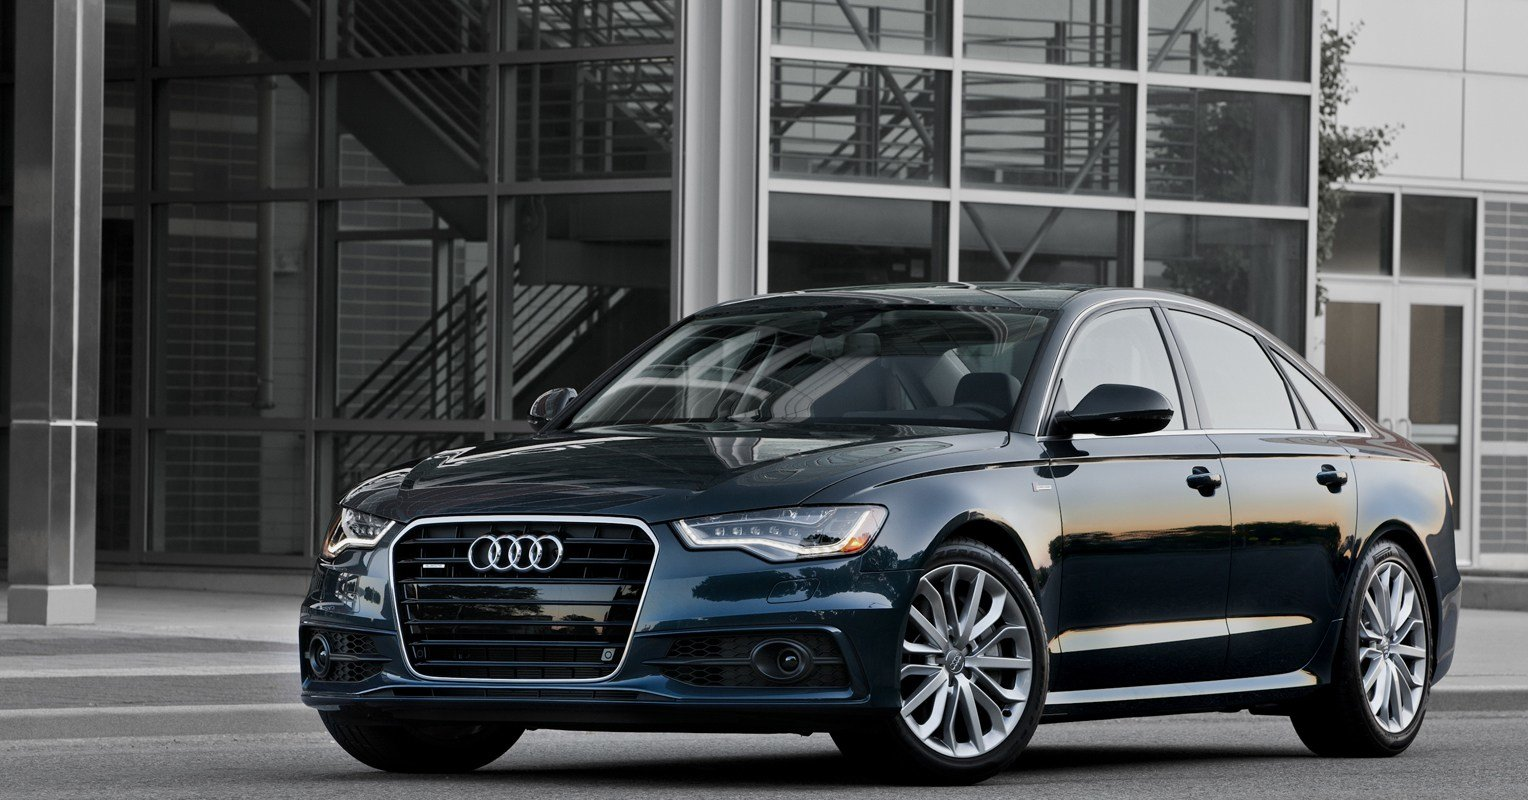 Latest Audi A6 Similar Look But Completely New Free Download